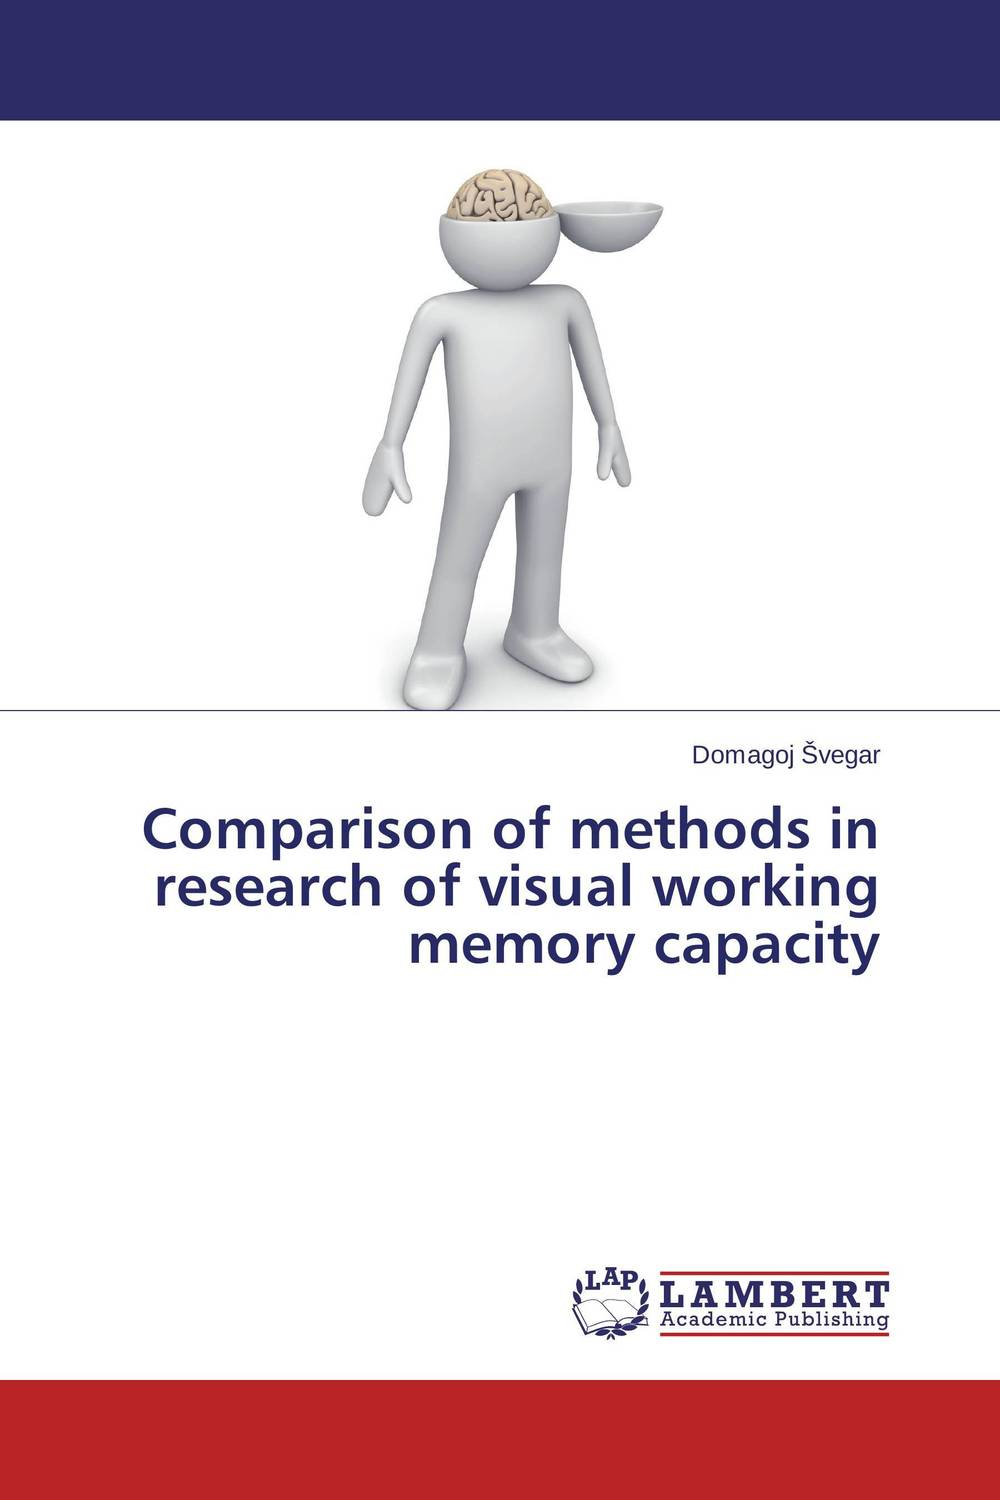 Comparison of methods in research of visual working memory capacity not working